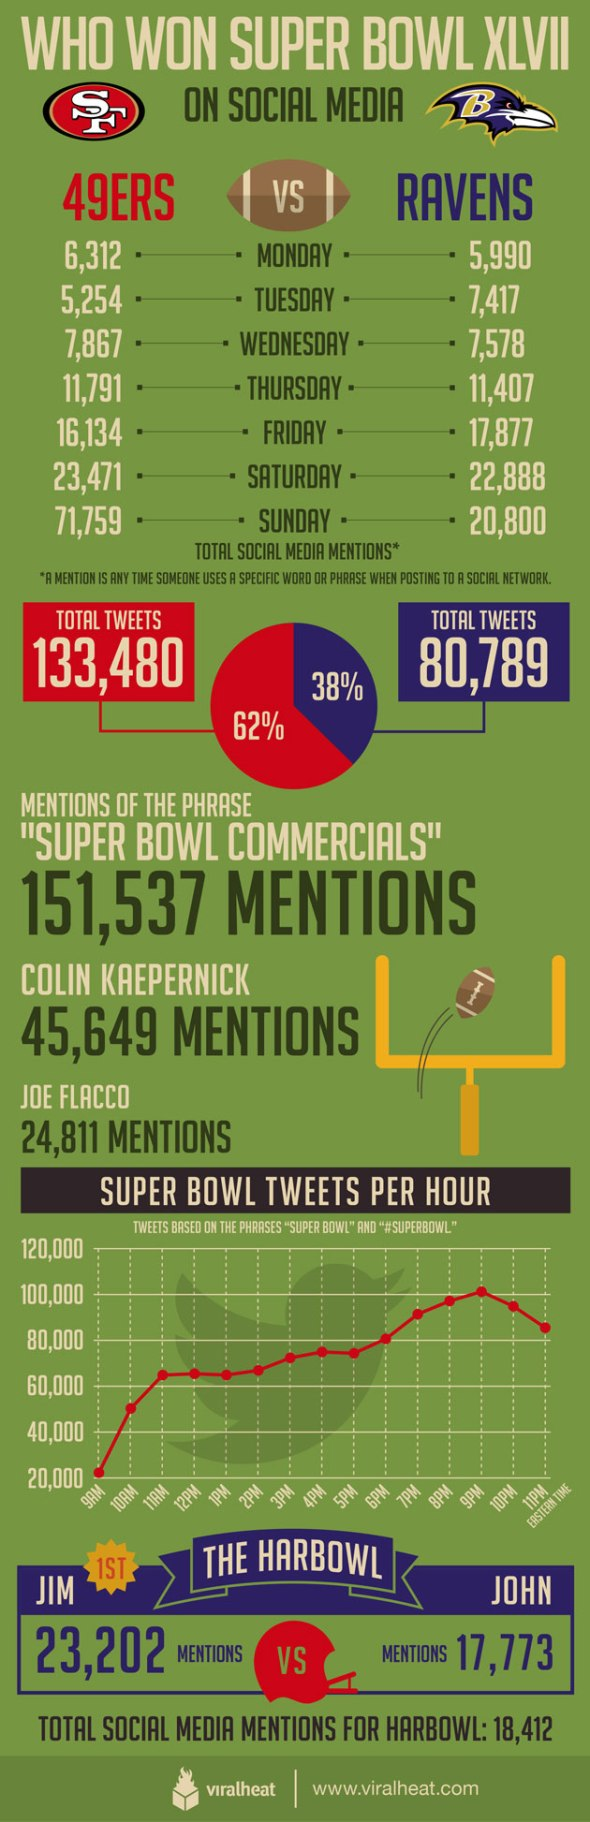 374270-super-bowl-infographic